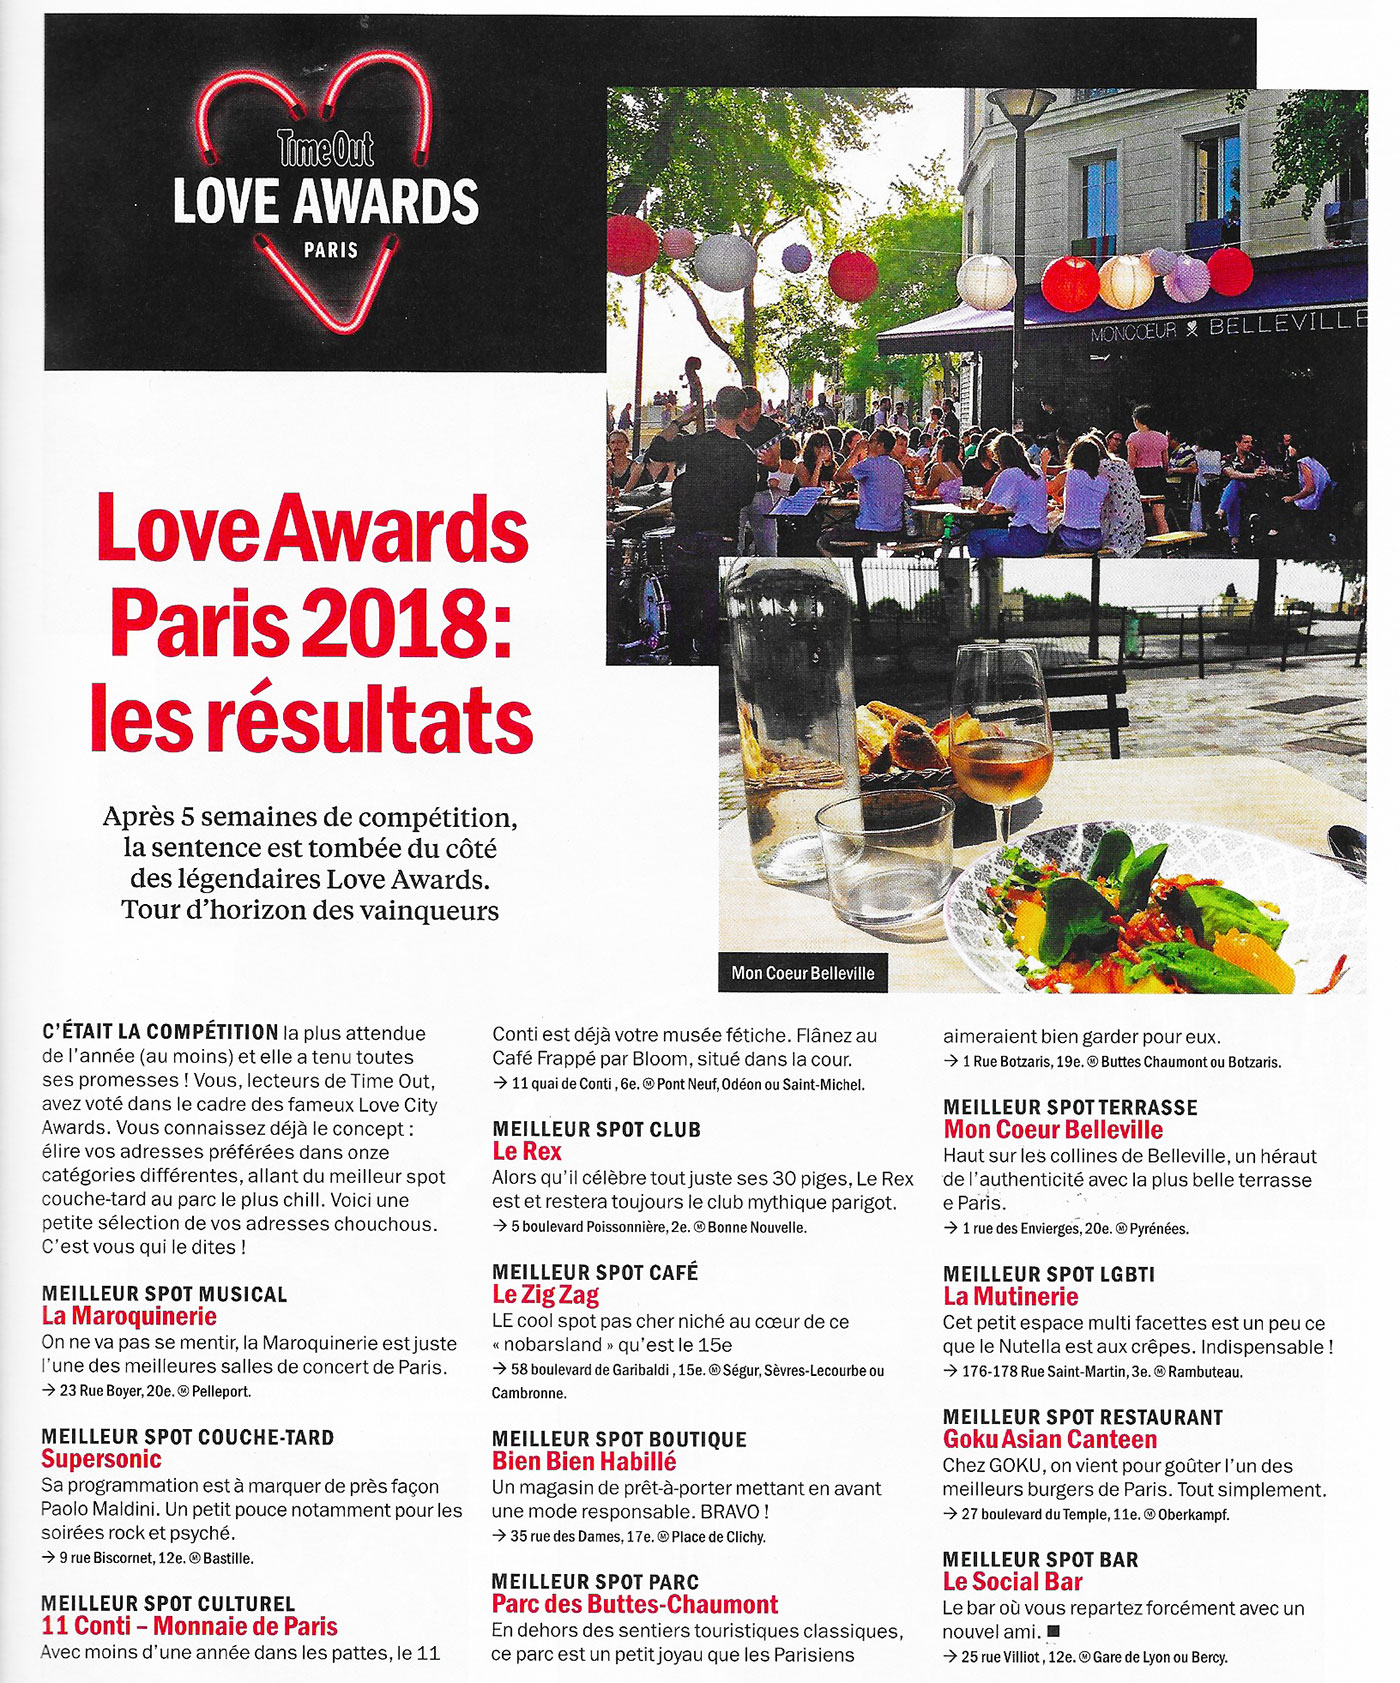 love-awards-timeout-moncoeur-belleville-plus-belle-terrasse